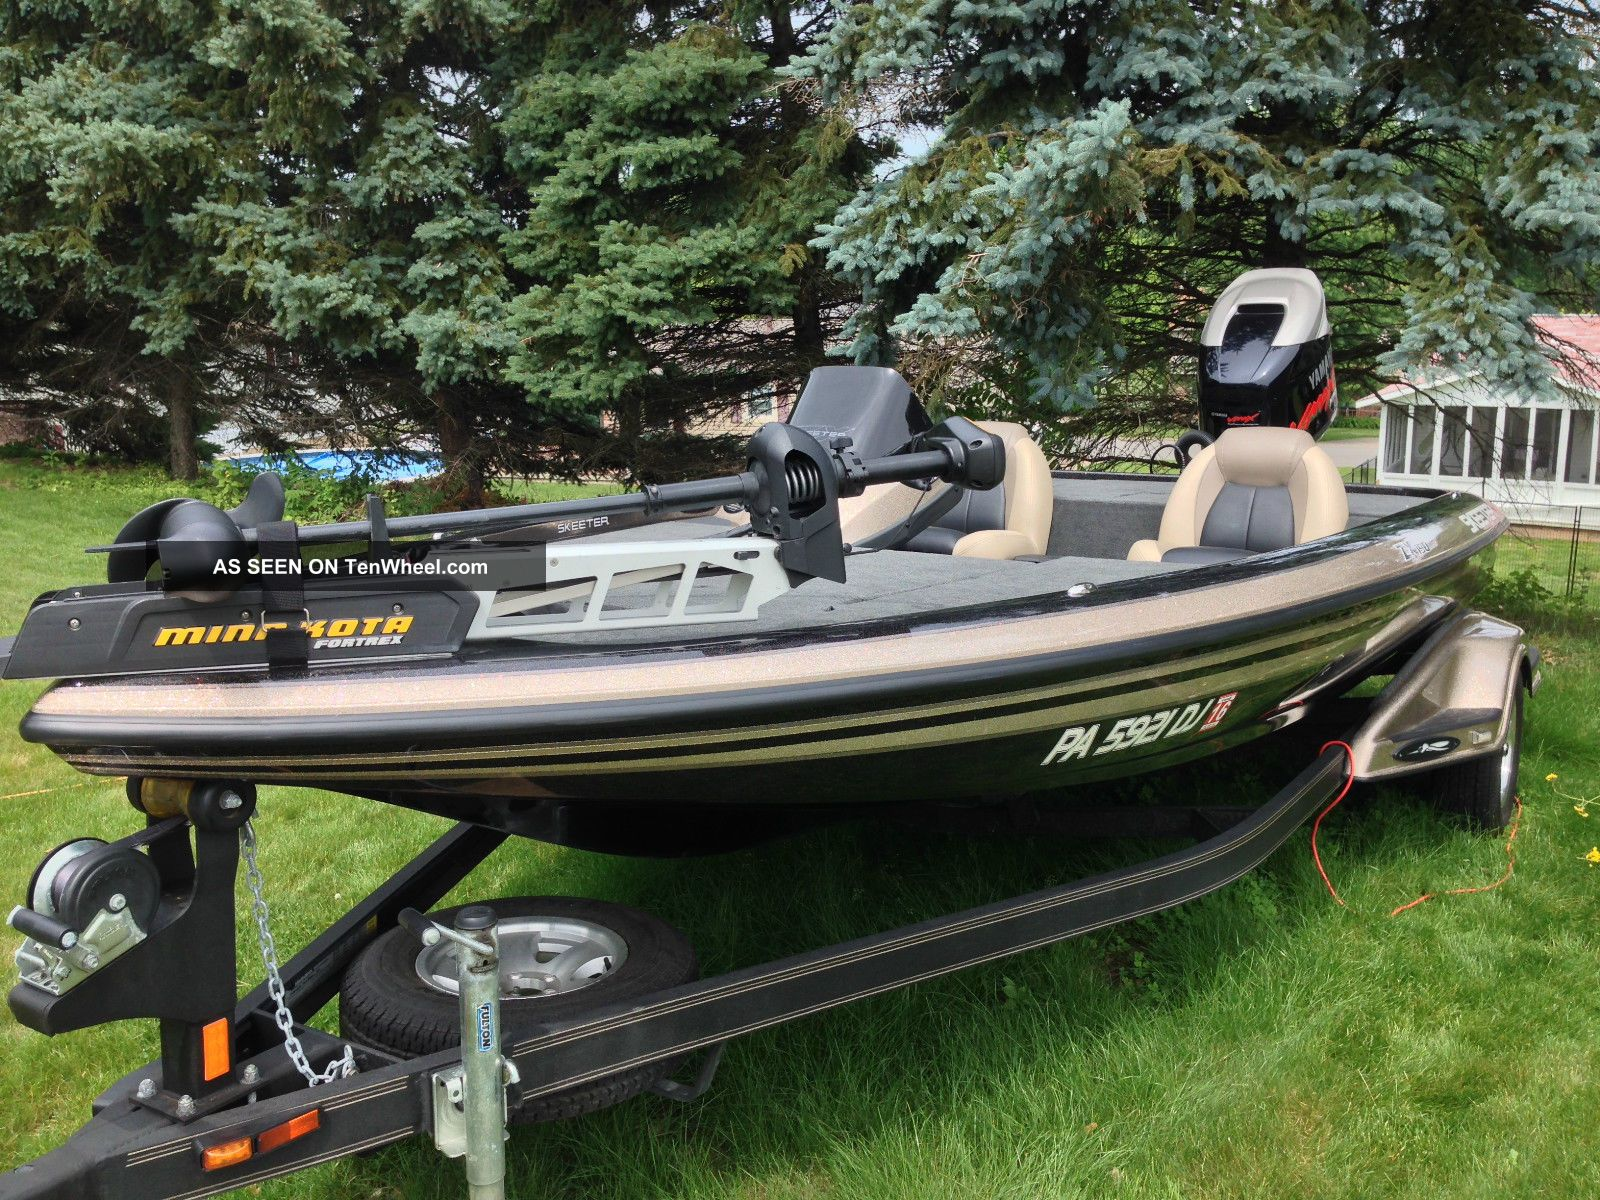 2012 Skeeter Zx 190 Bass Fishing Boats photo